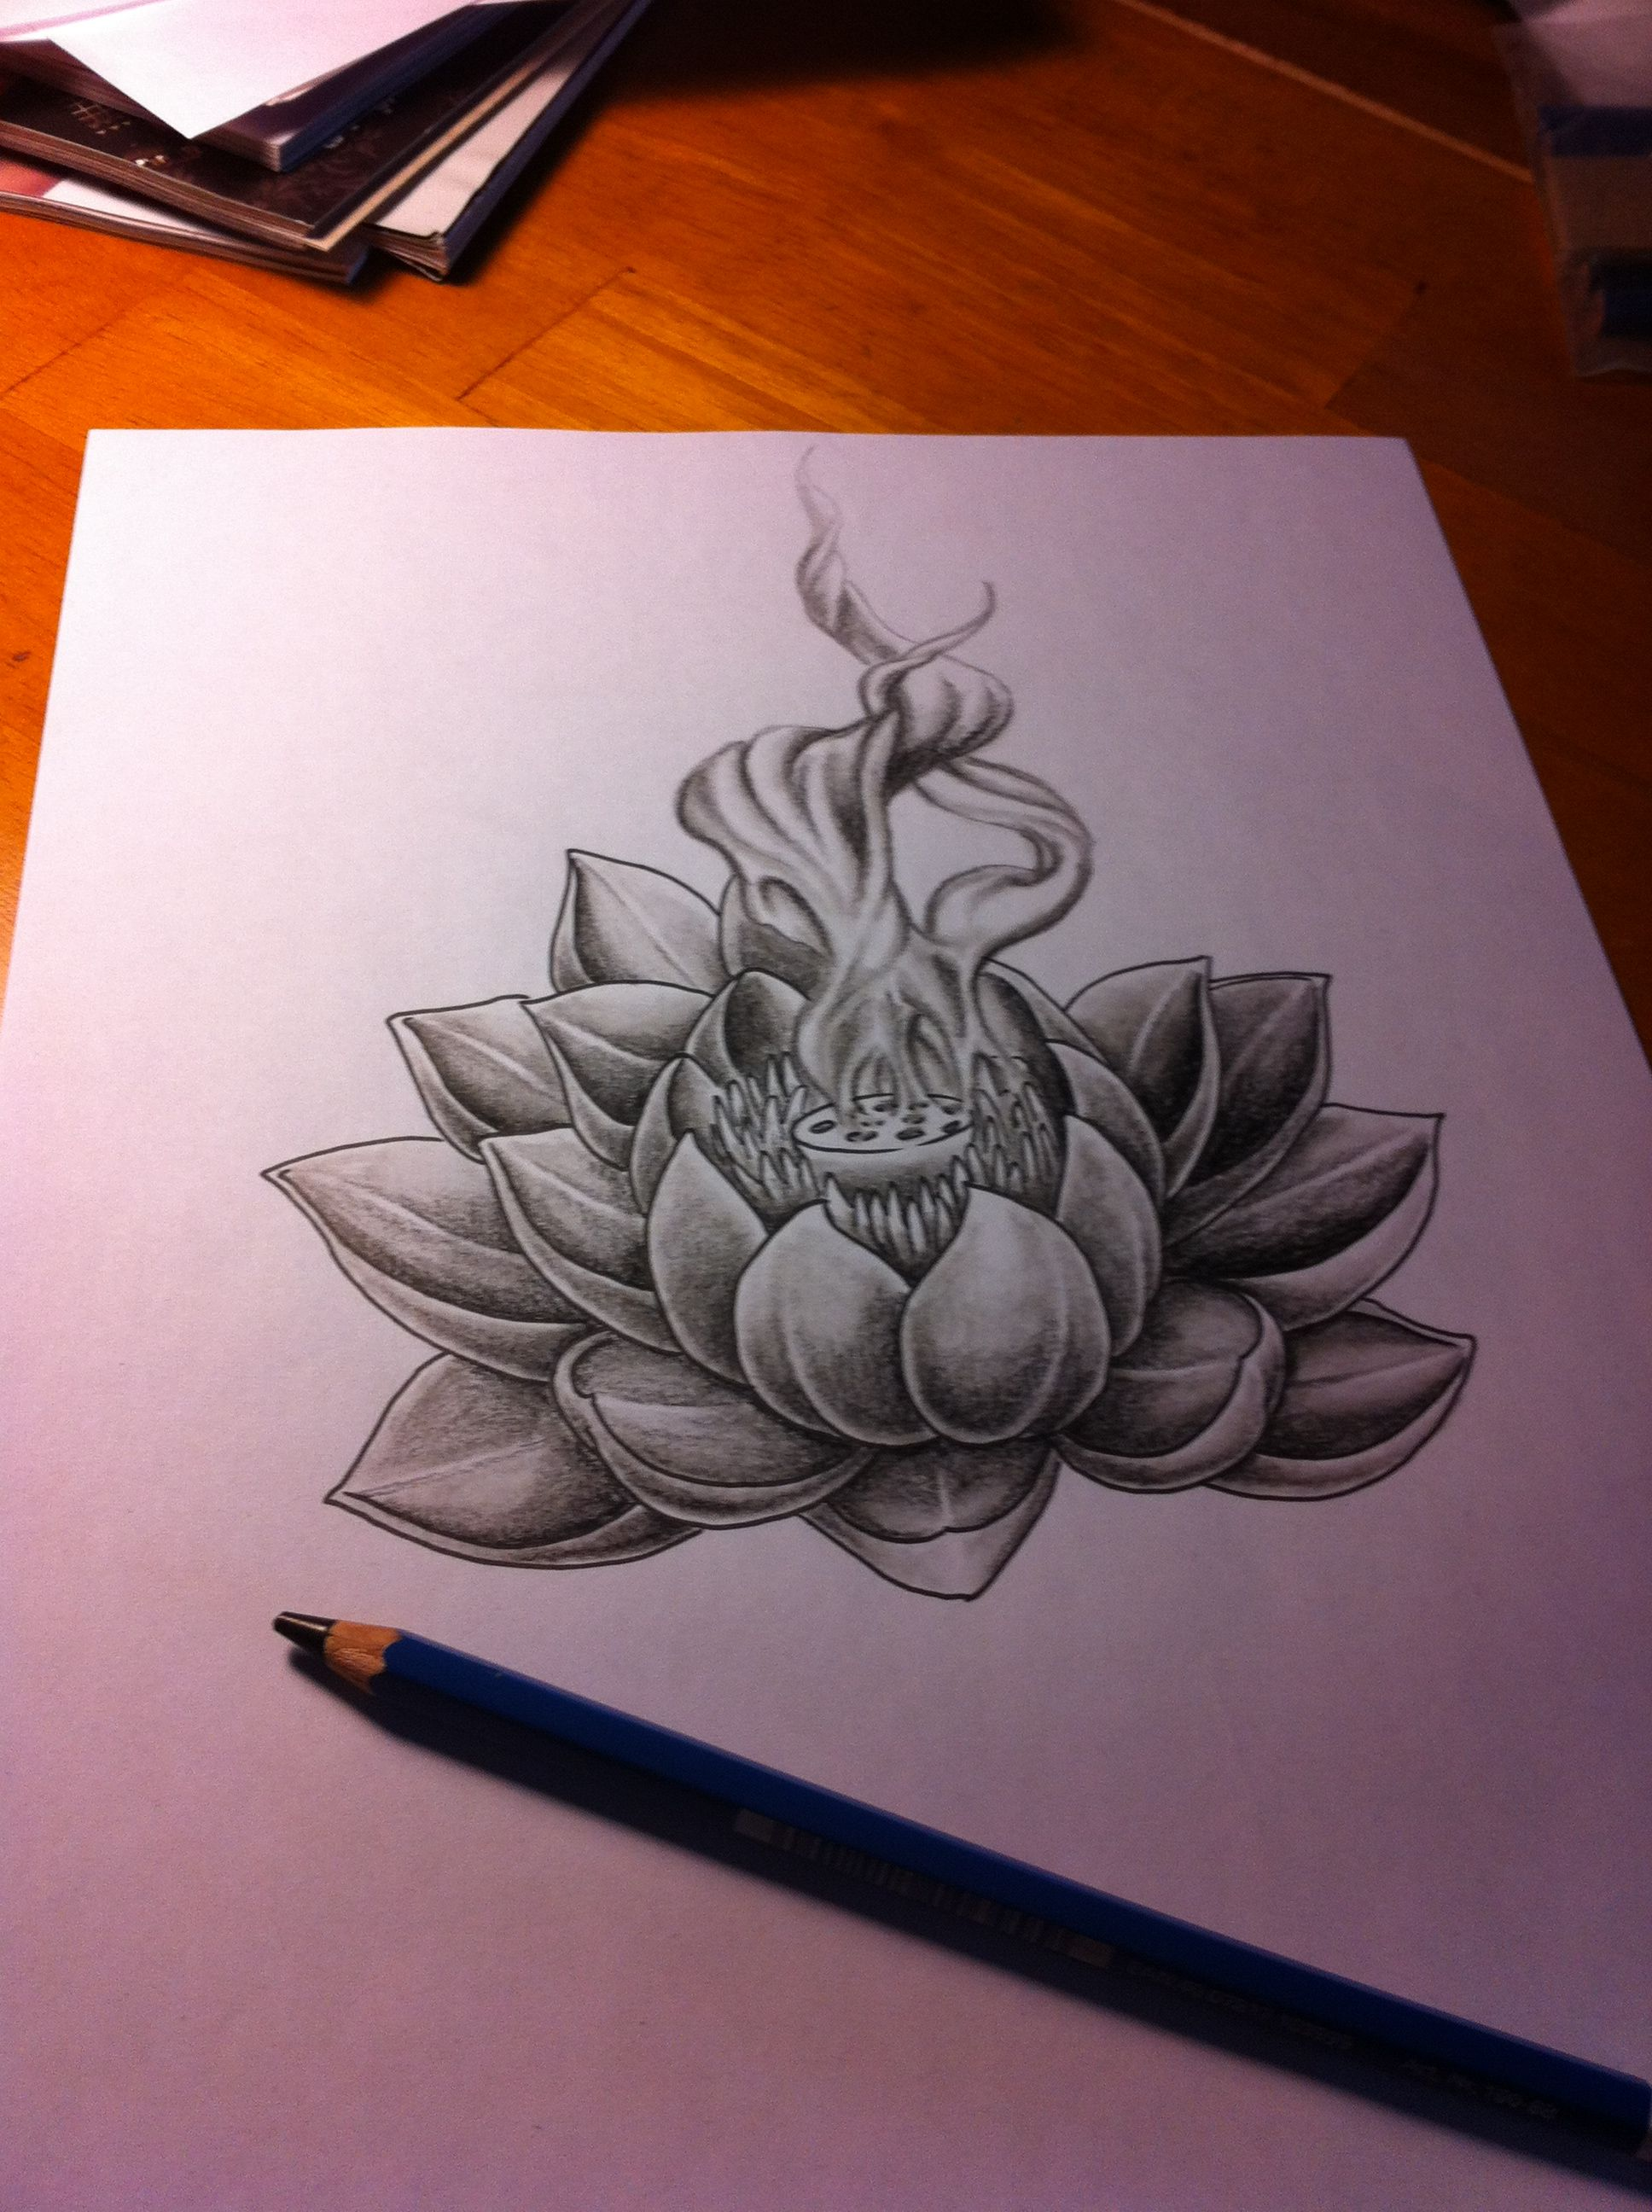 Flower Of Life Tattoos This Is Our First Sneak Peek Lotus Flower